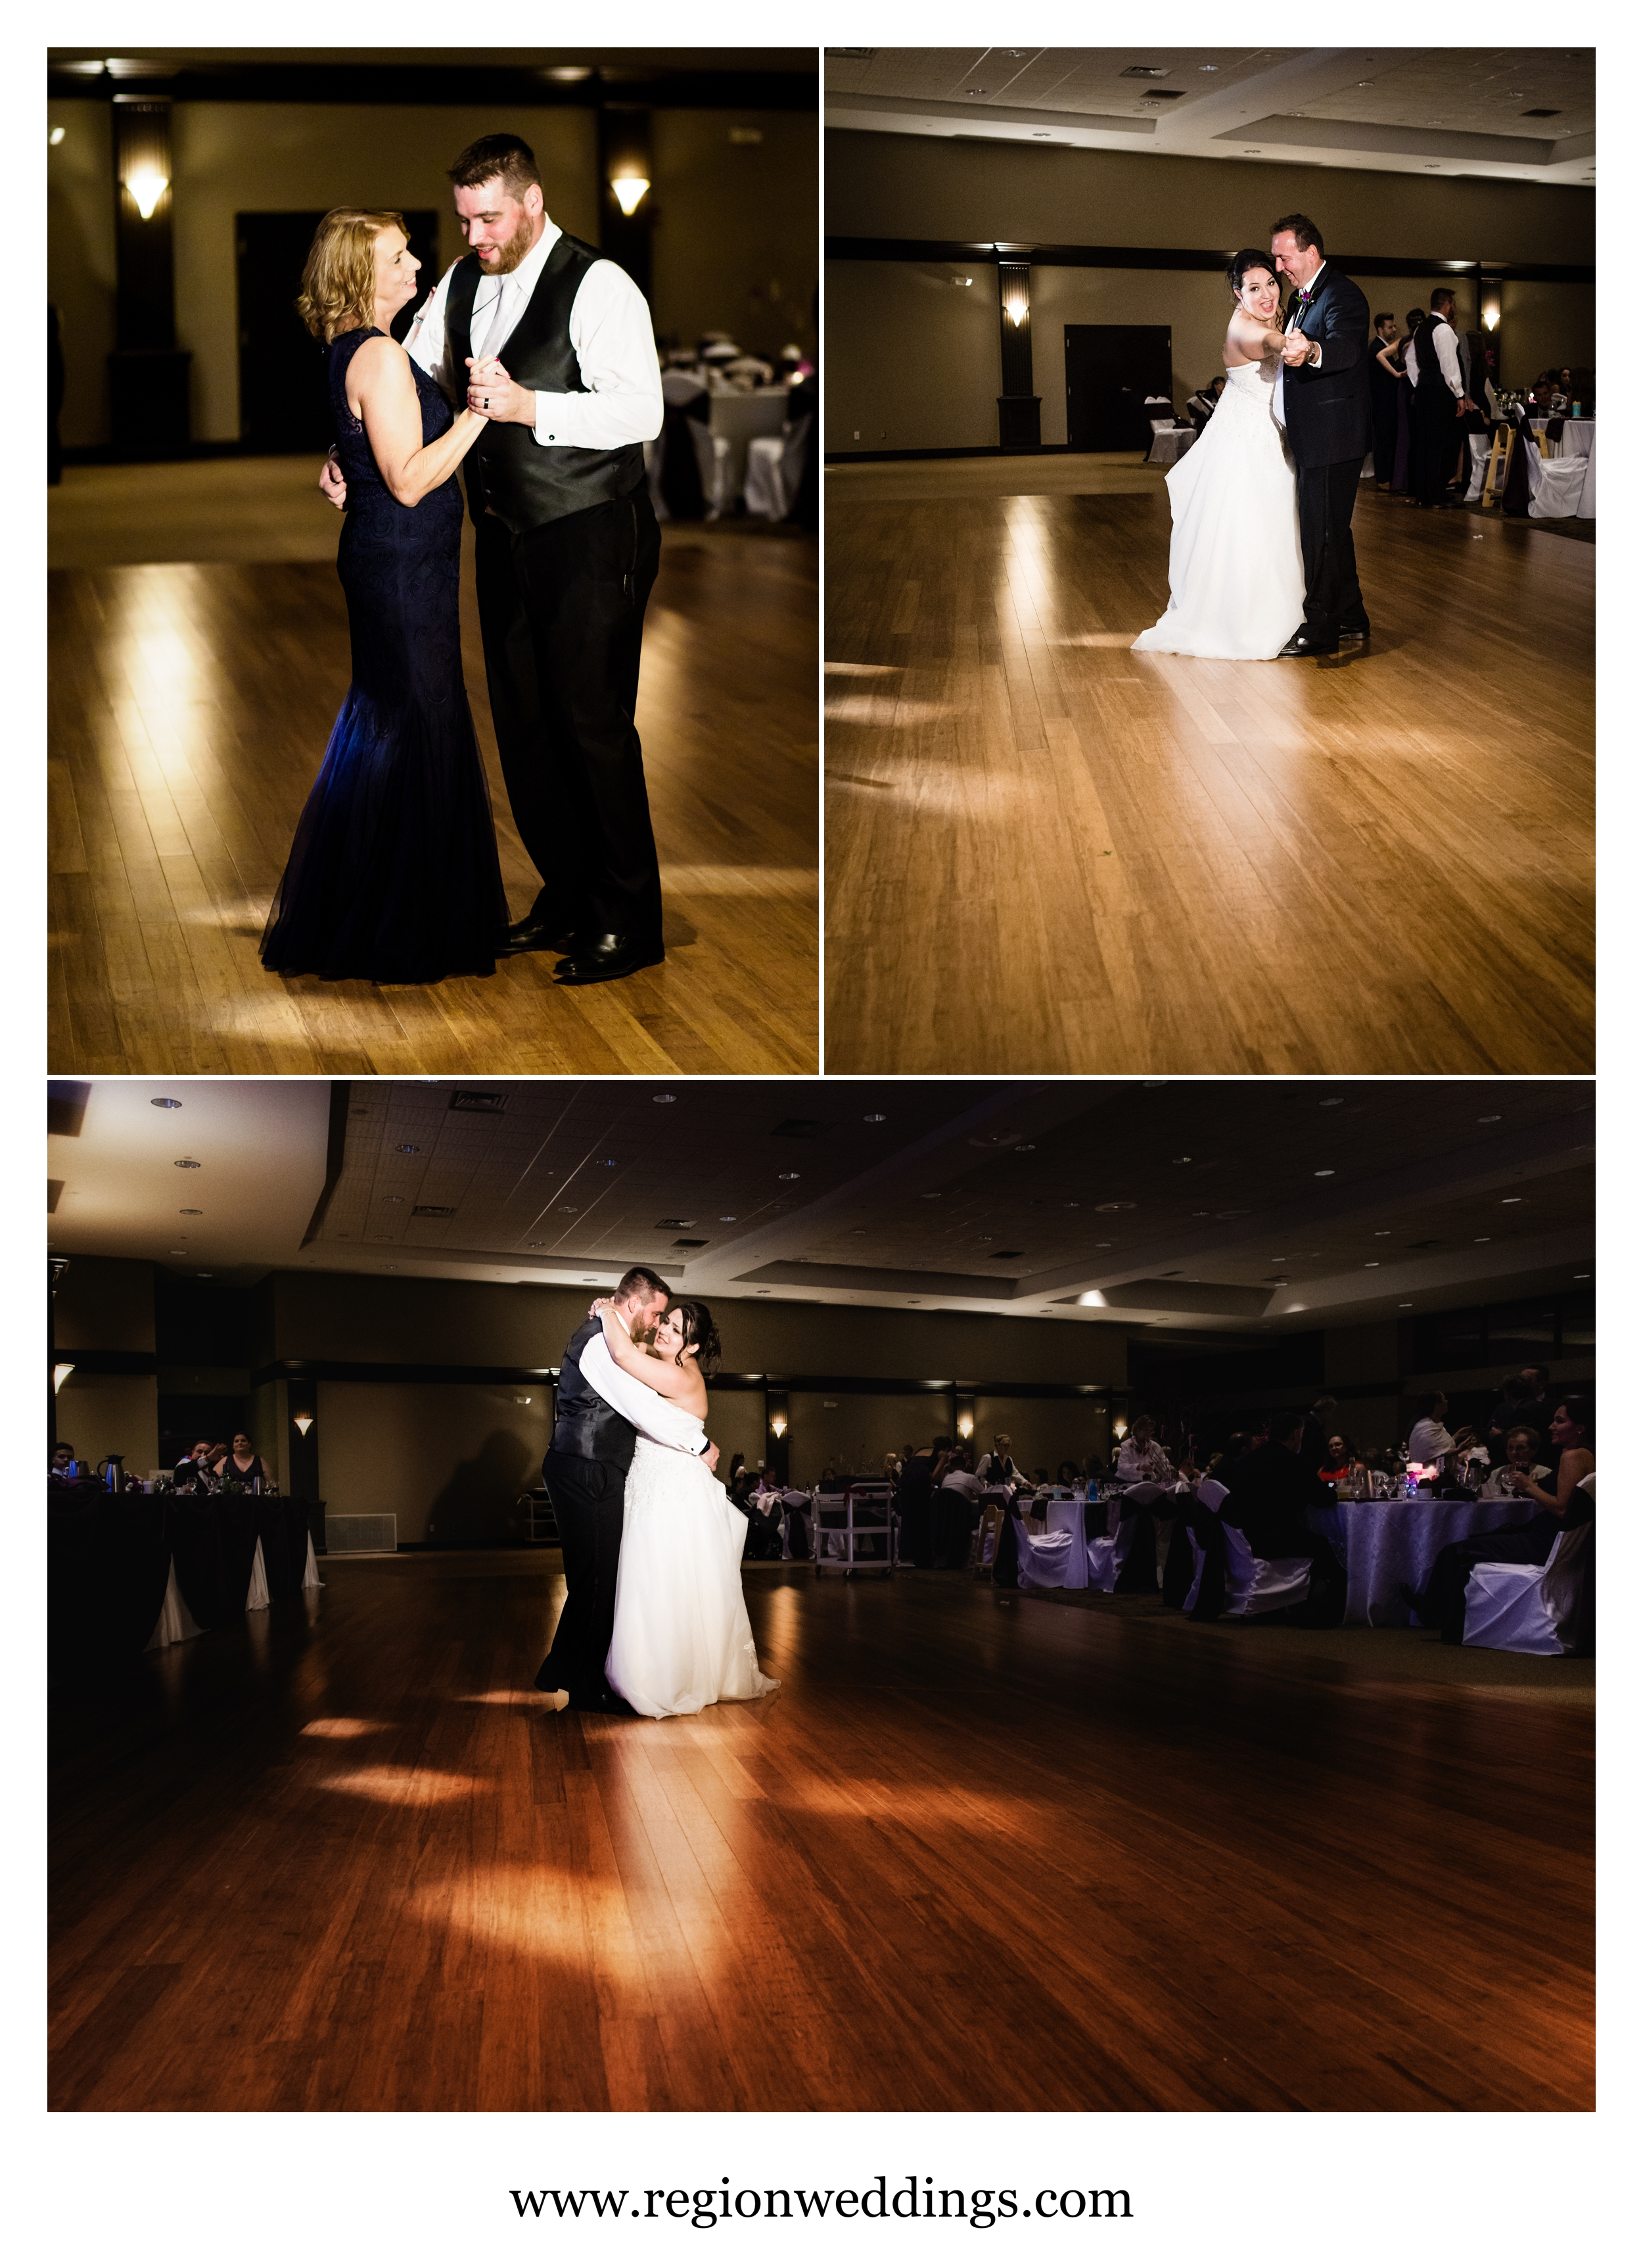 First dances at Halls of St. George in Schererville, Indiana.